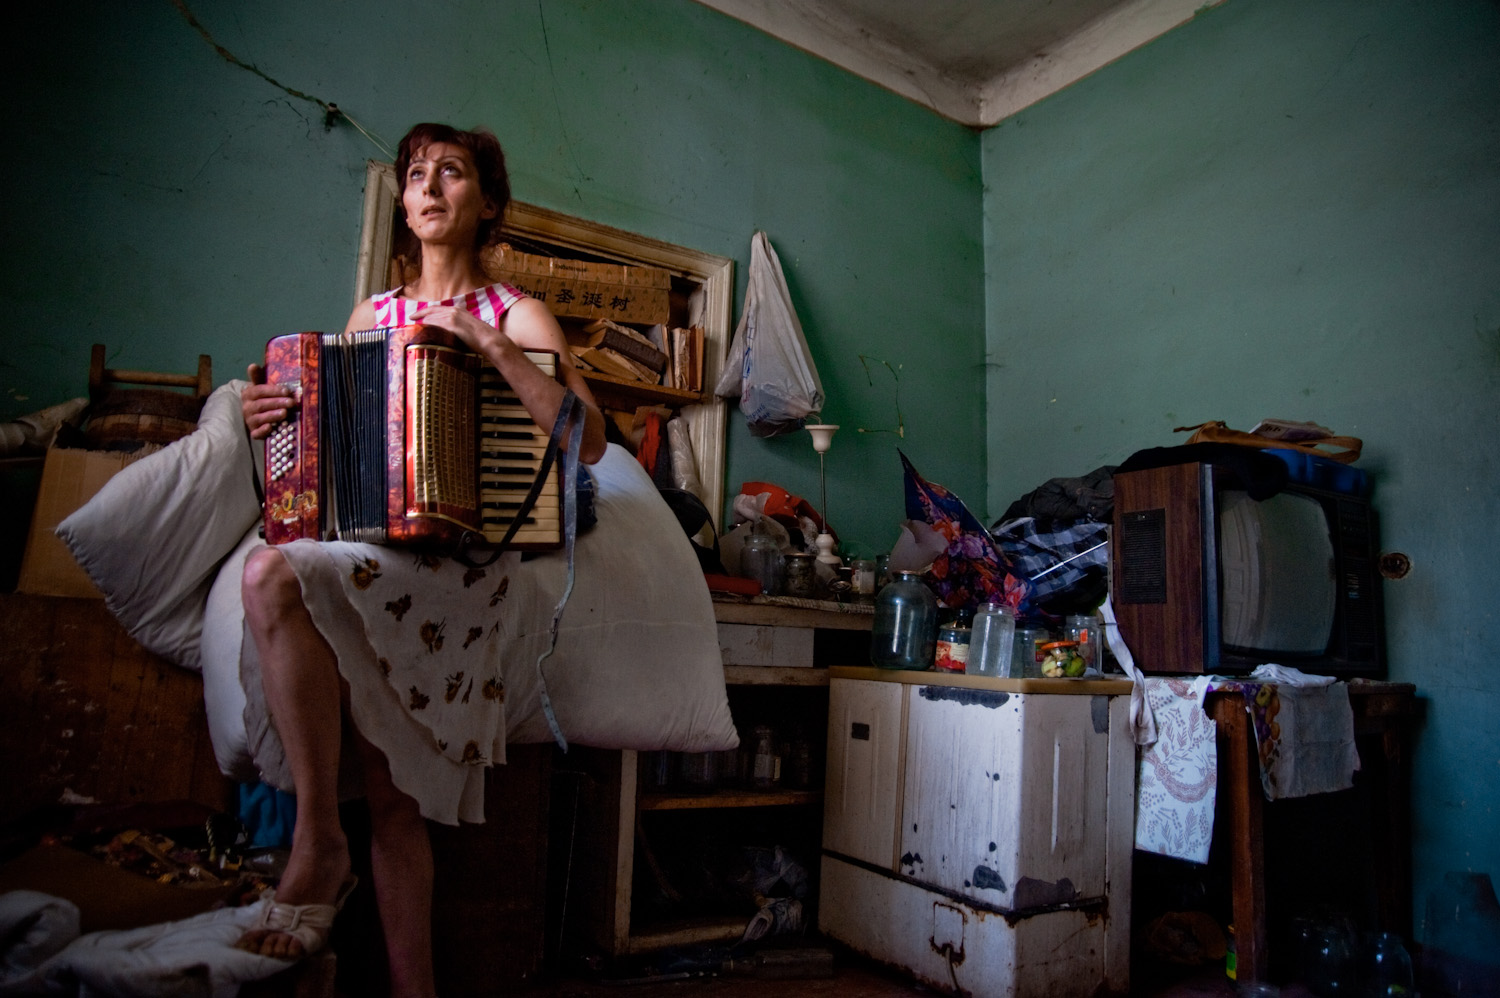 Narine with the accordion she once played as a girl. With her 4 children, she escaped an abusive, alcoholic husband who regularly beat and raped her. The family now lives in this dilapidated house in Arinch village.